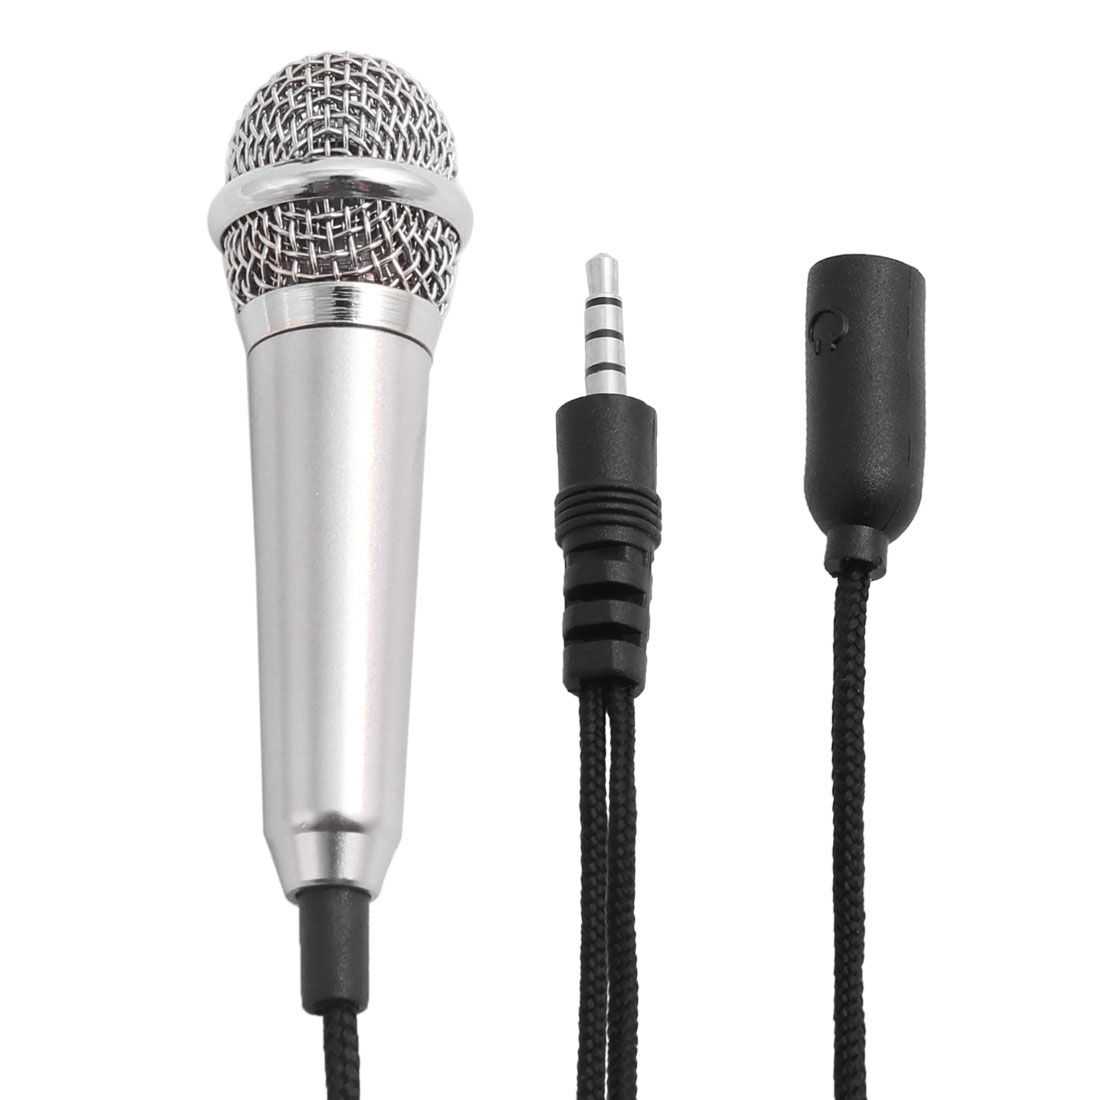 Portable 3.5mm Mini Smart Microphone Stereo Mic Gray w Base for Phone Singing